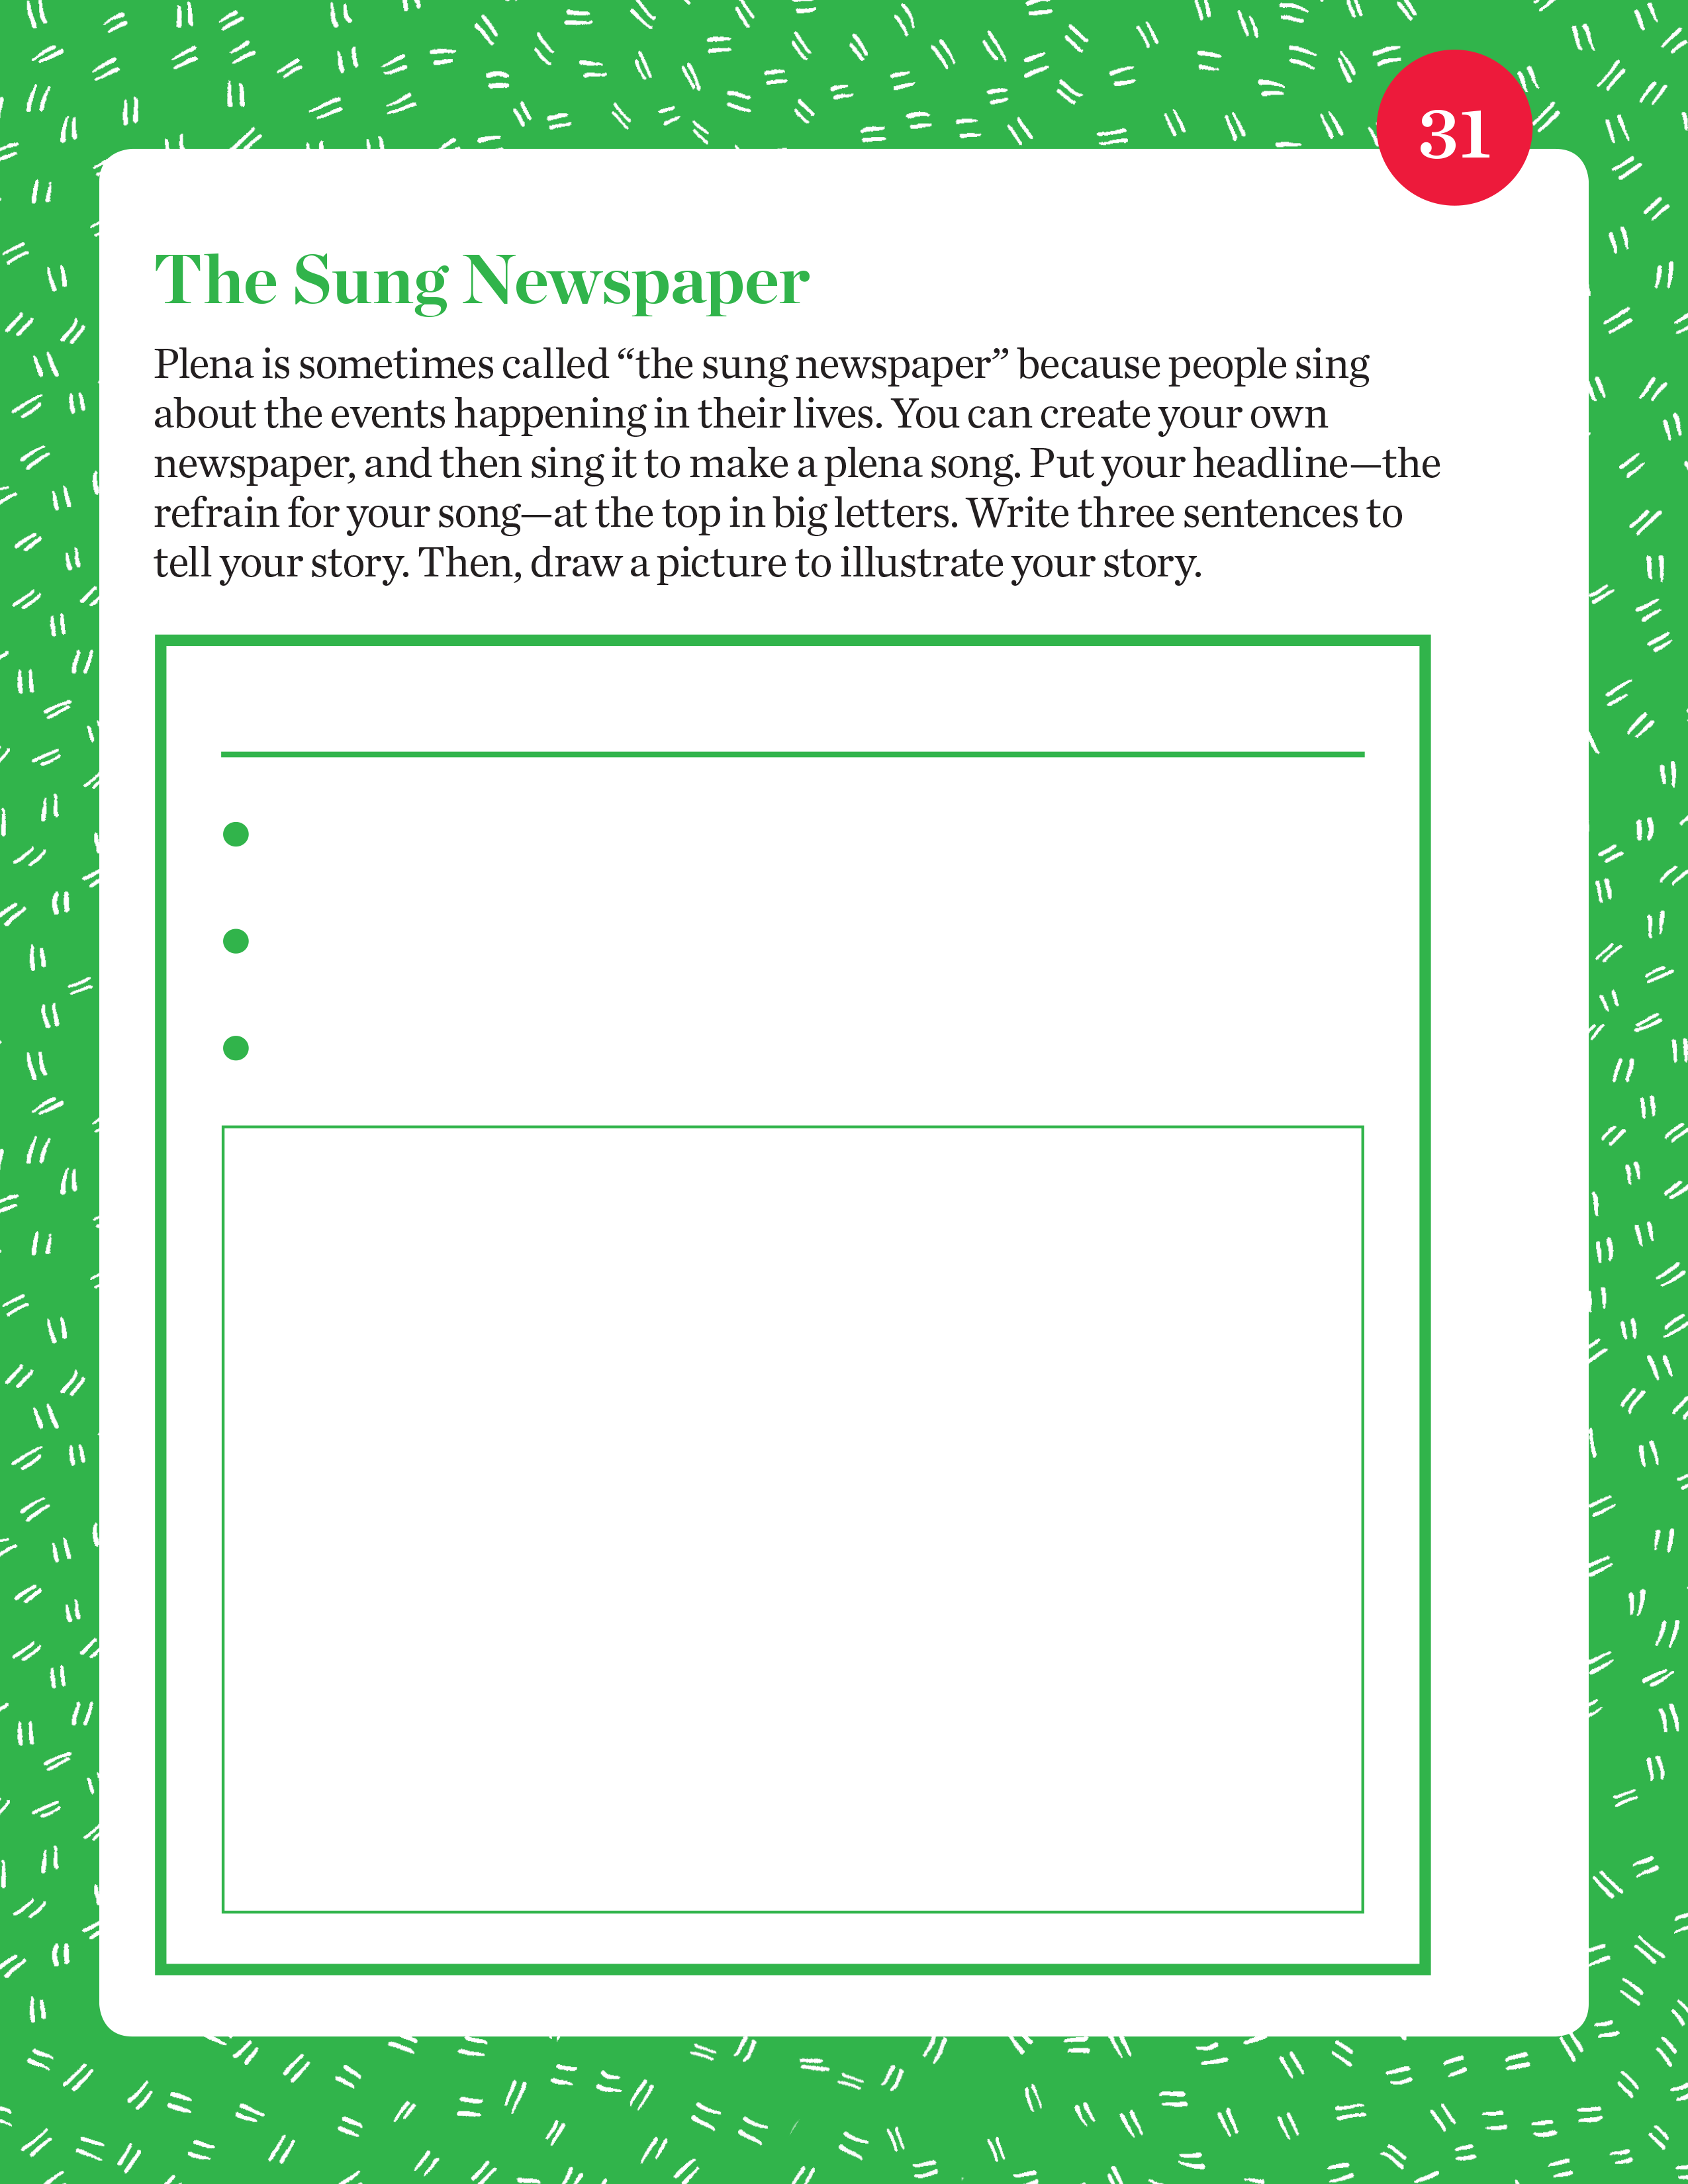 The Sung Newspaper